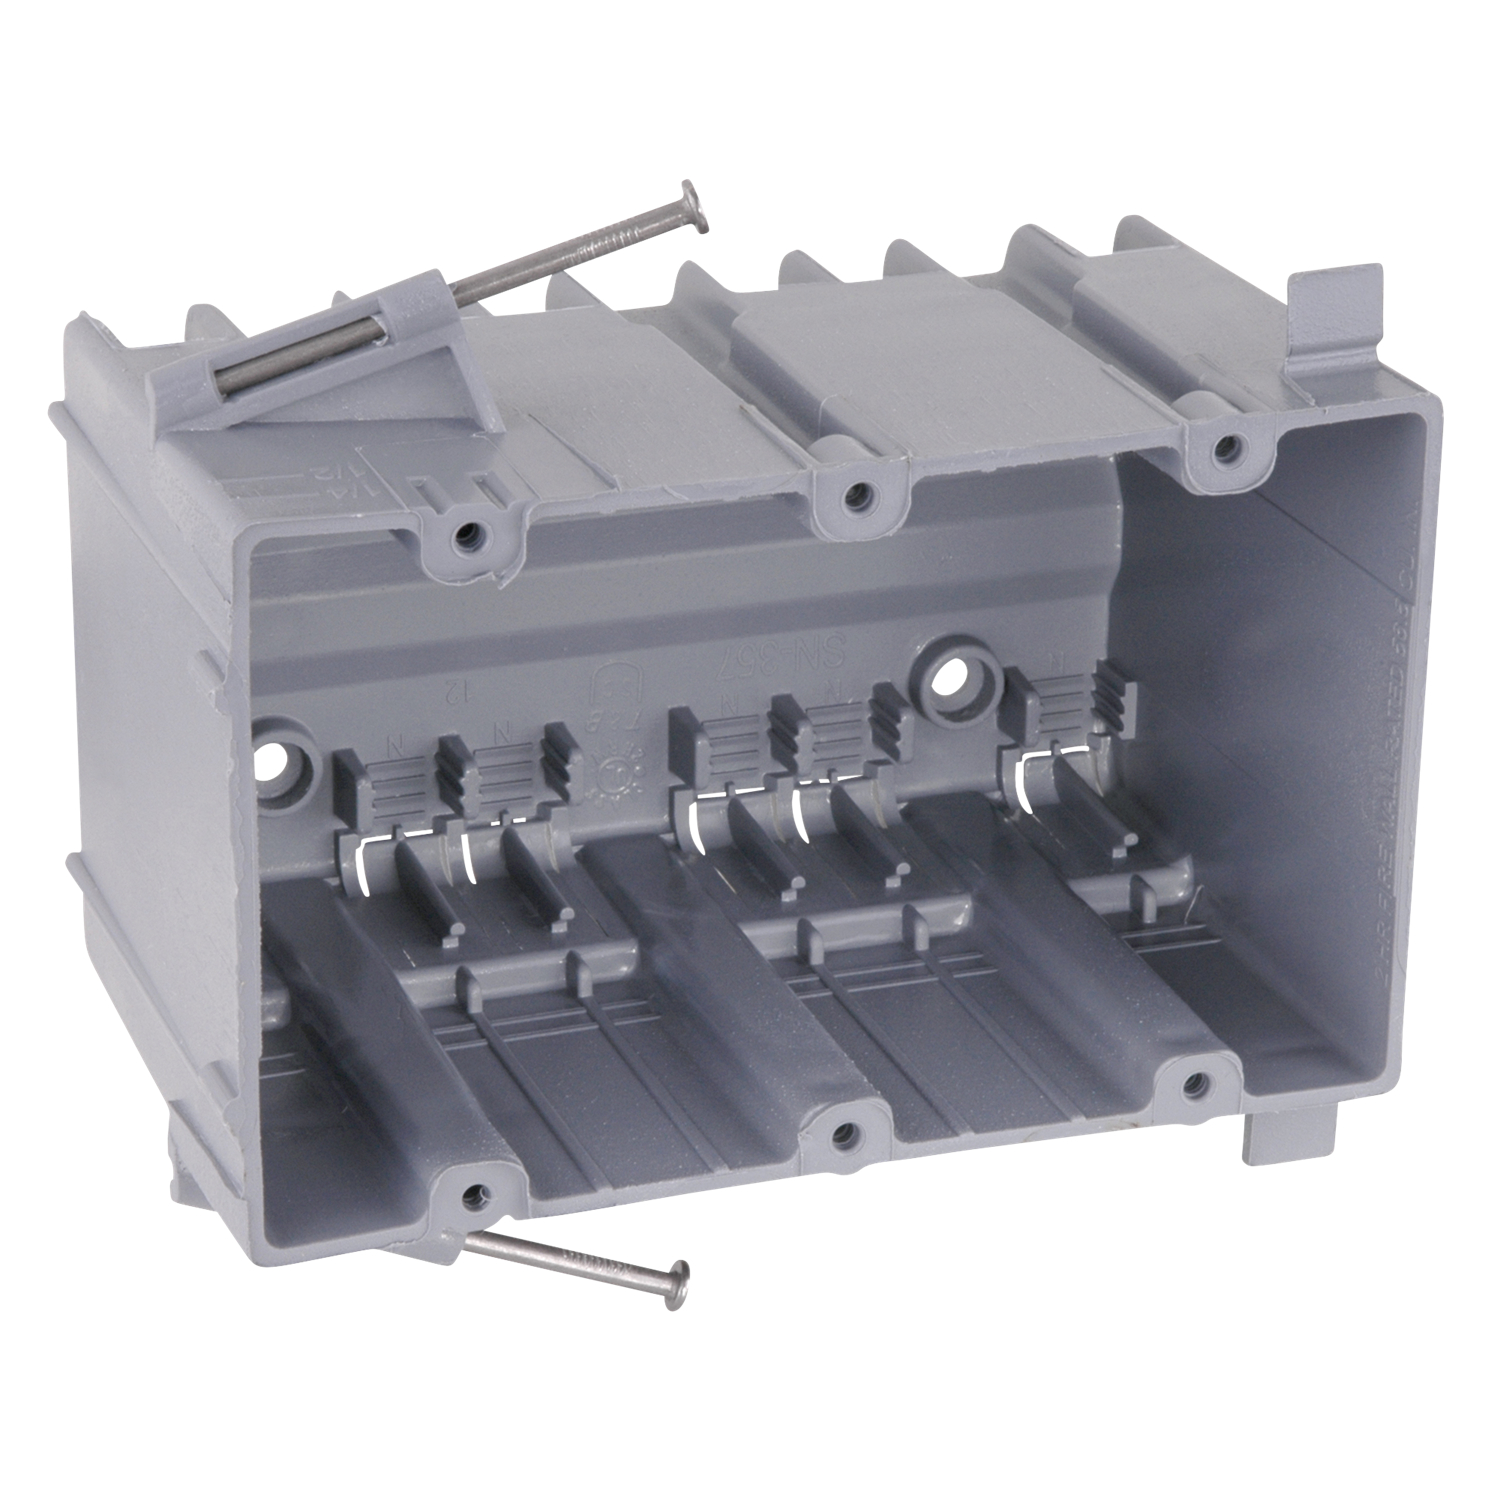 CARSN-357 CARLON SN-357 3-GANG SW BOX W/ ANG SIDE;Carlon® SN-357 New Work Outlet Box With 3/8 in Offset Wallboard Tabs and Molded Fast Clamp, PVC, 56.5 cu-in Capacity, 3 Gangs